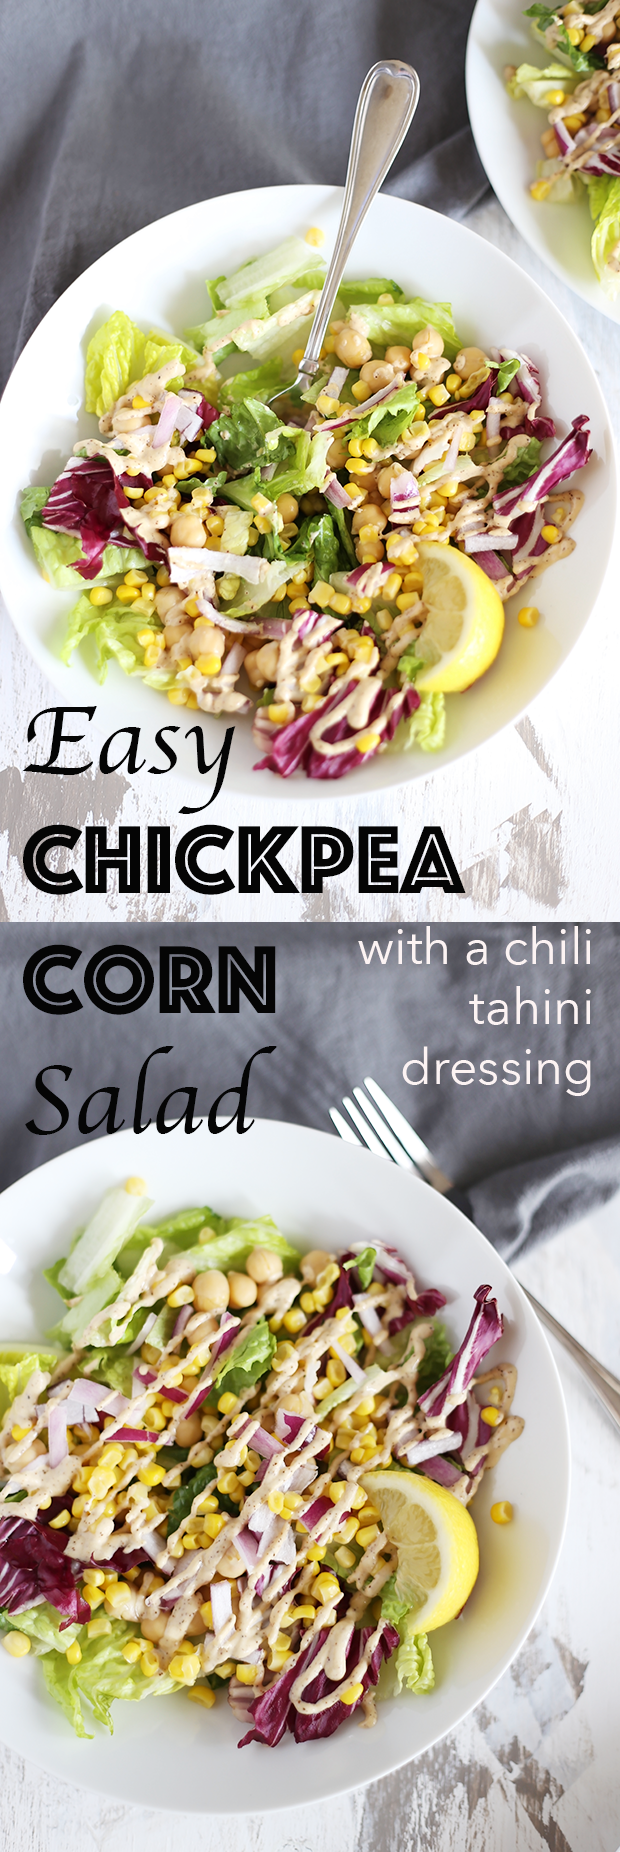 This Easy Clean Chickpea Corn Salad is healthy, quick and easy to make, packed with protein and healthy fats, paired with a chili tahini dressing! Vegan, GF | TwoRaspberries.com